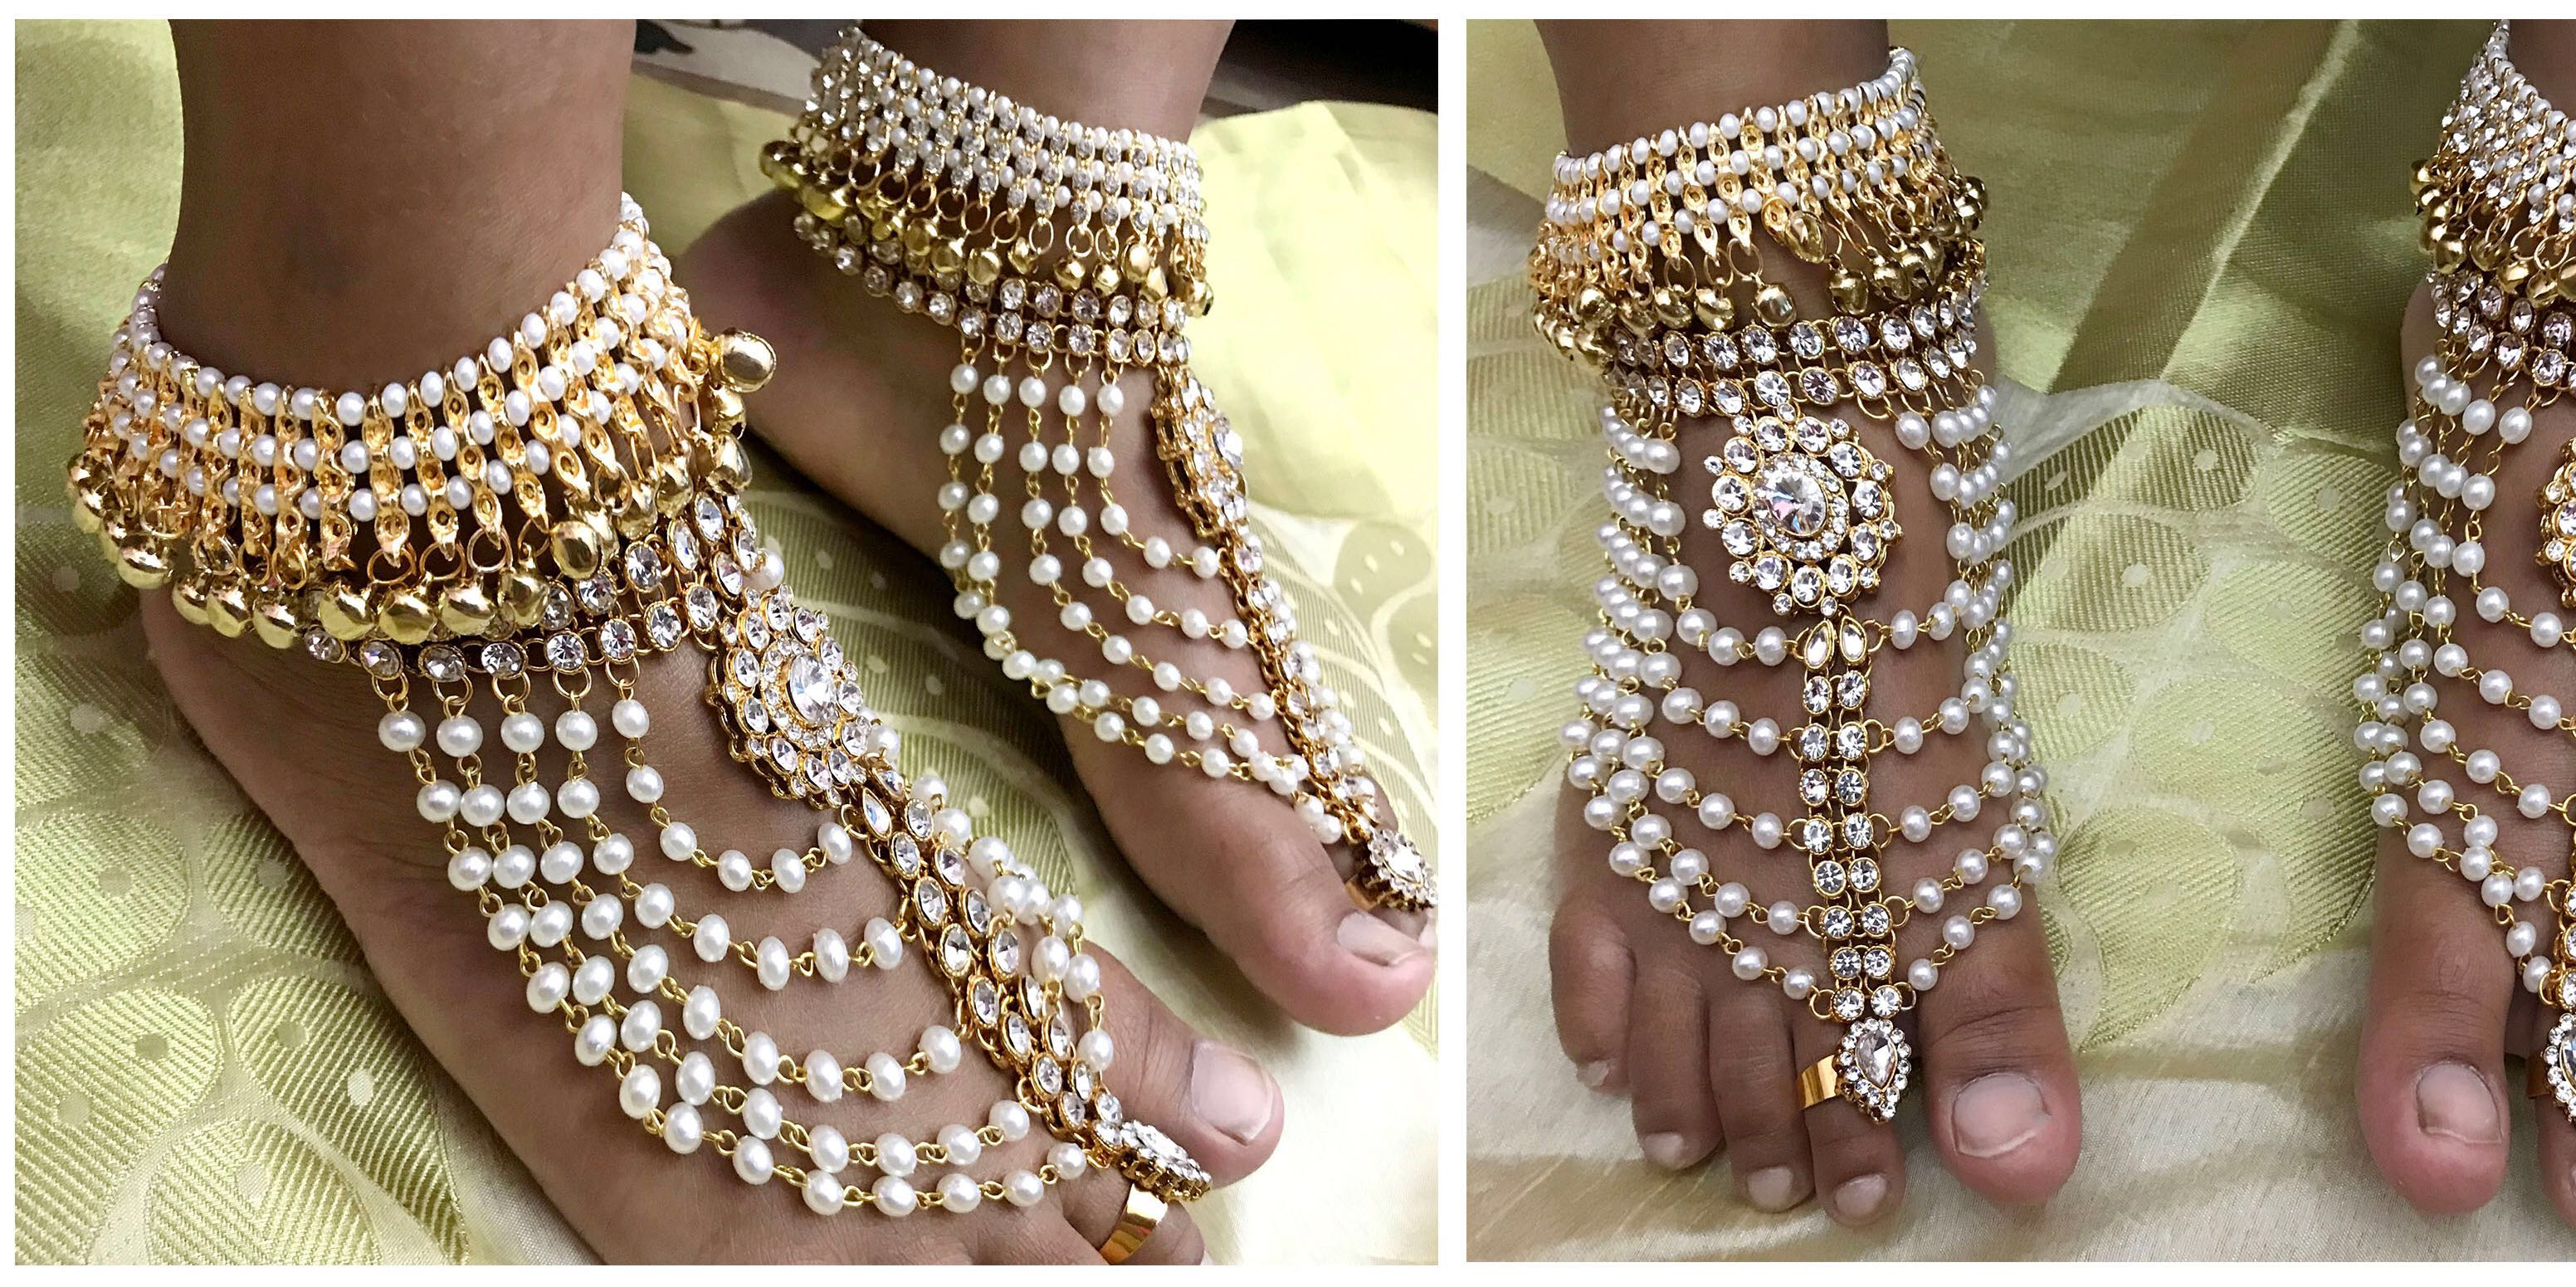 ankle shaped anklets sandal gold bracelet steel beads pin tornozeleira woman barefoot pleated stainless anklet foot women heart jewelry